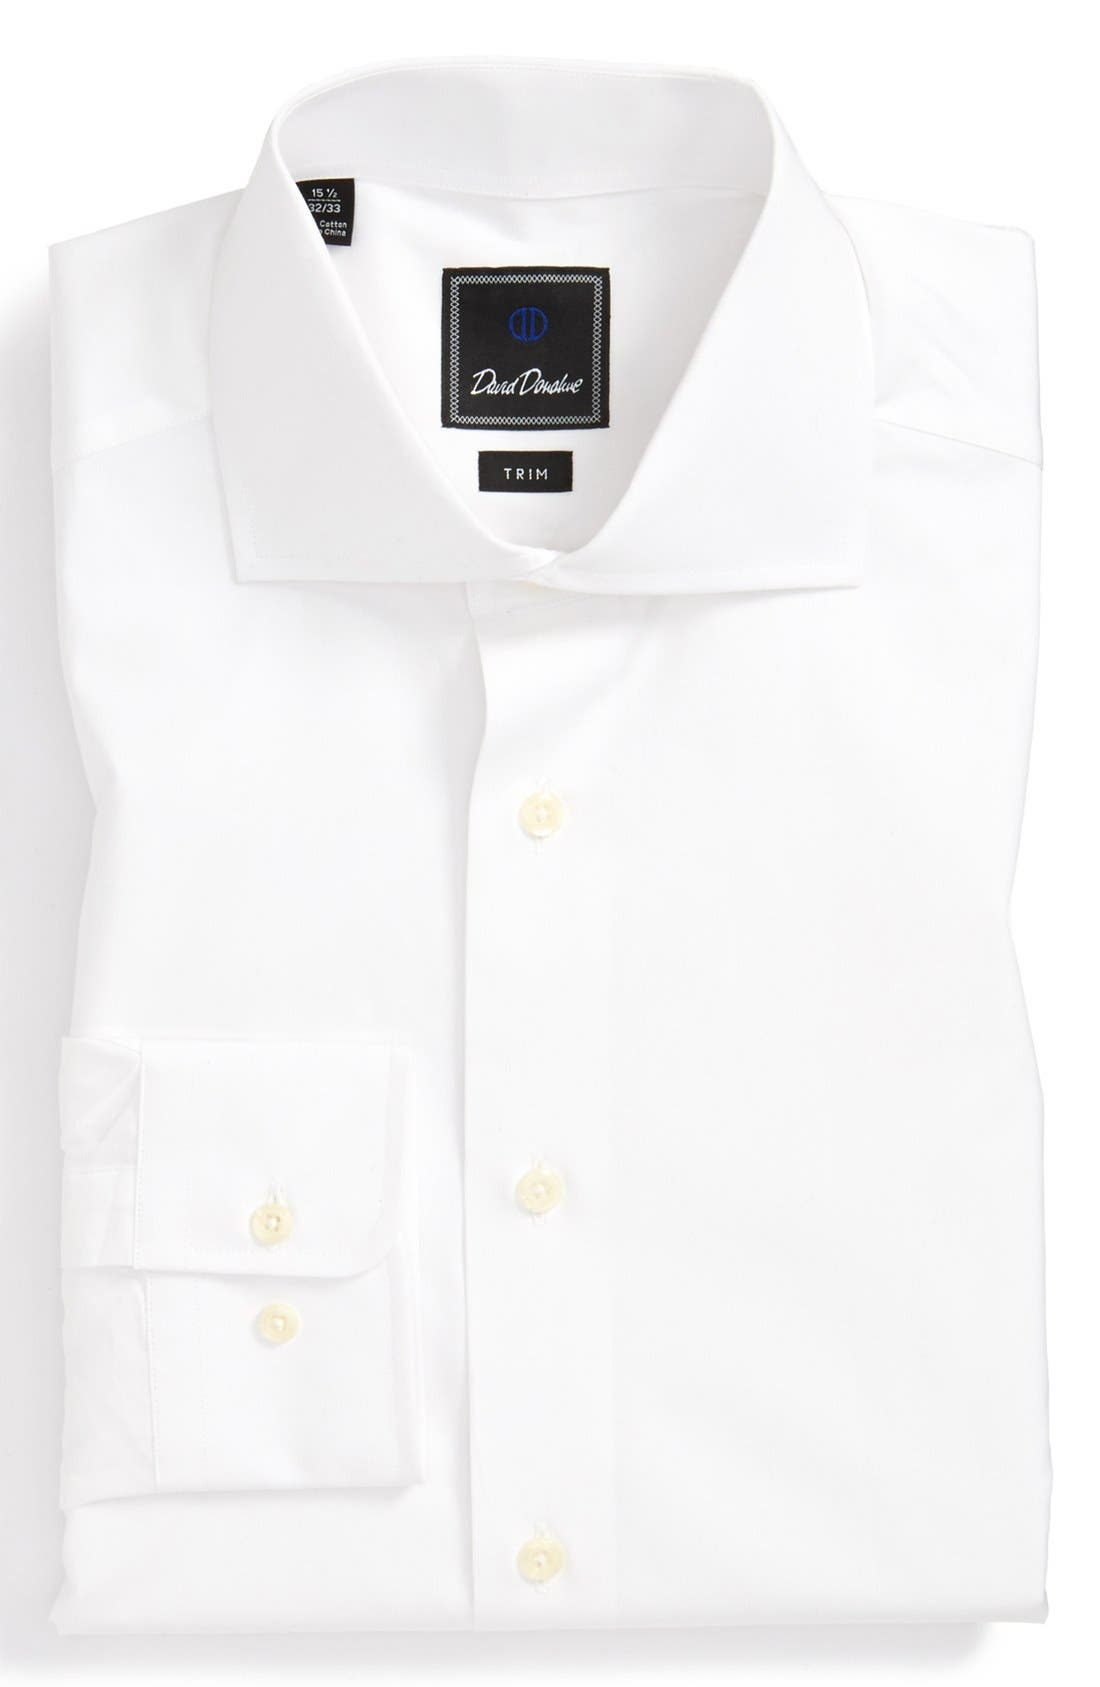 Main Image - David Donahue Broadcloth Trim Fit Dress Shirt